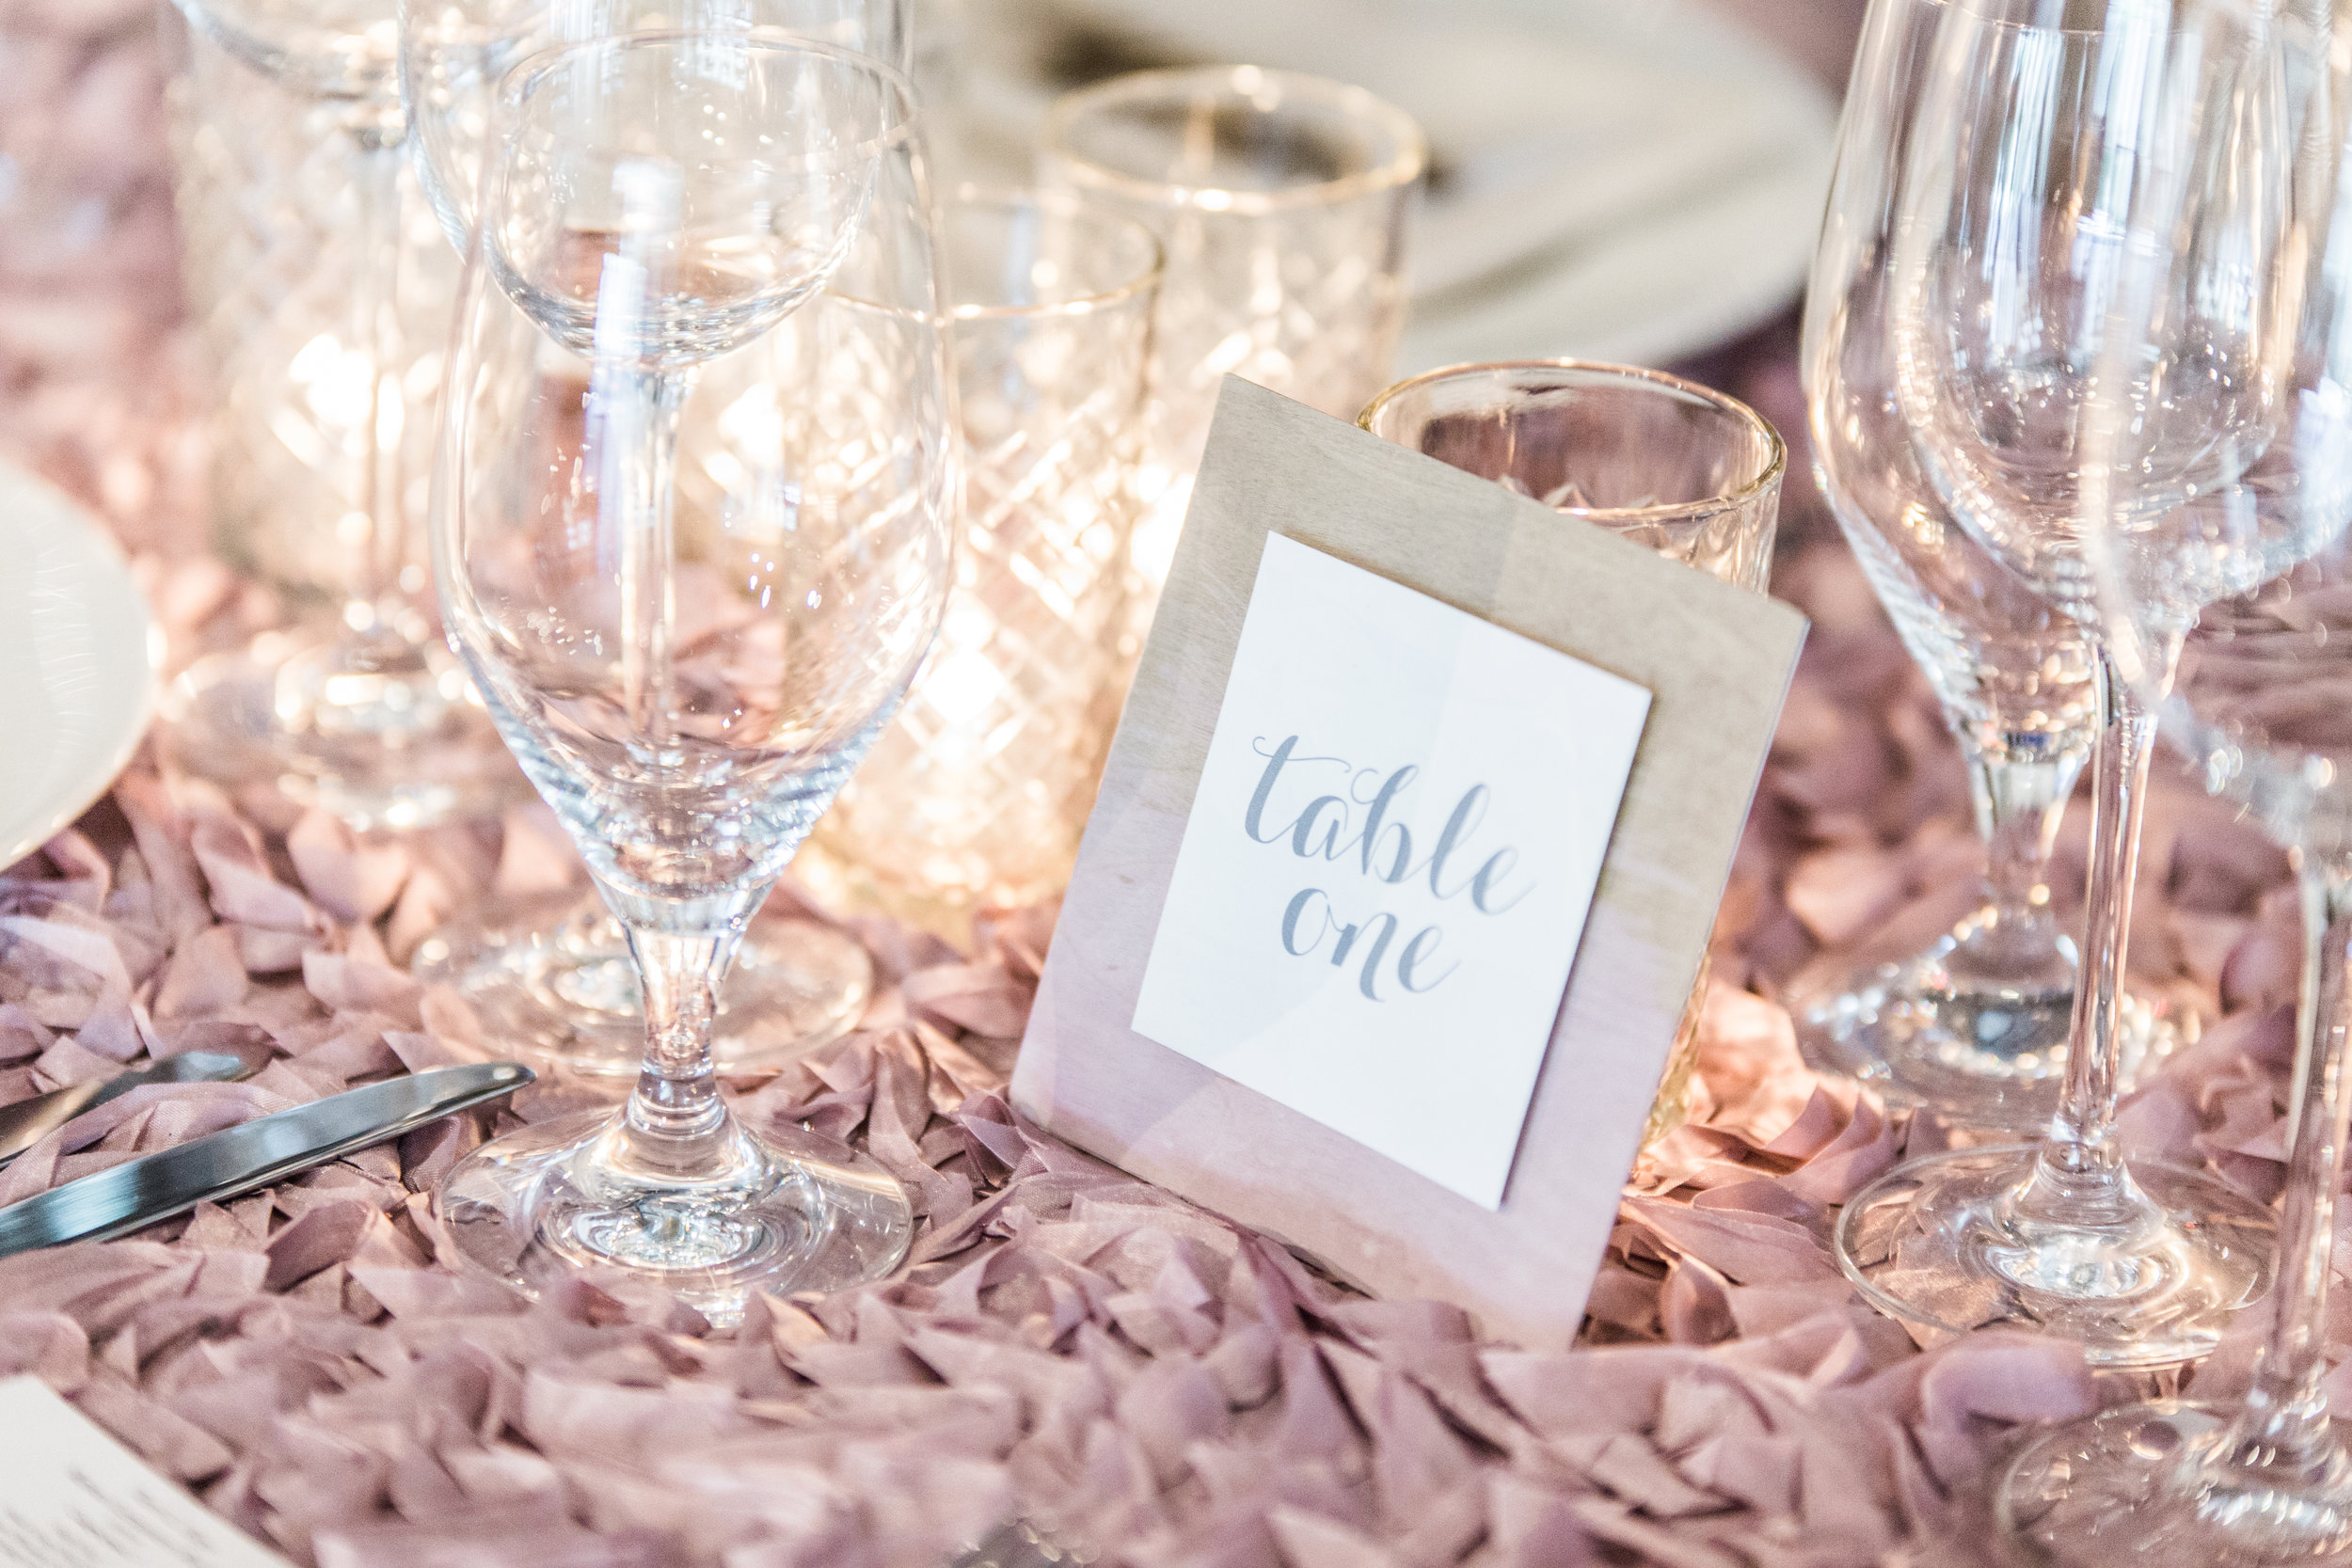 lilac, lavender _ periwinkle luxury wedding at cannon green charleston by scarlet plan _ design for revolution wedding tours (320).jpg